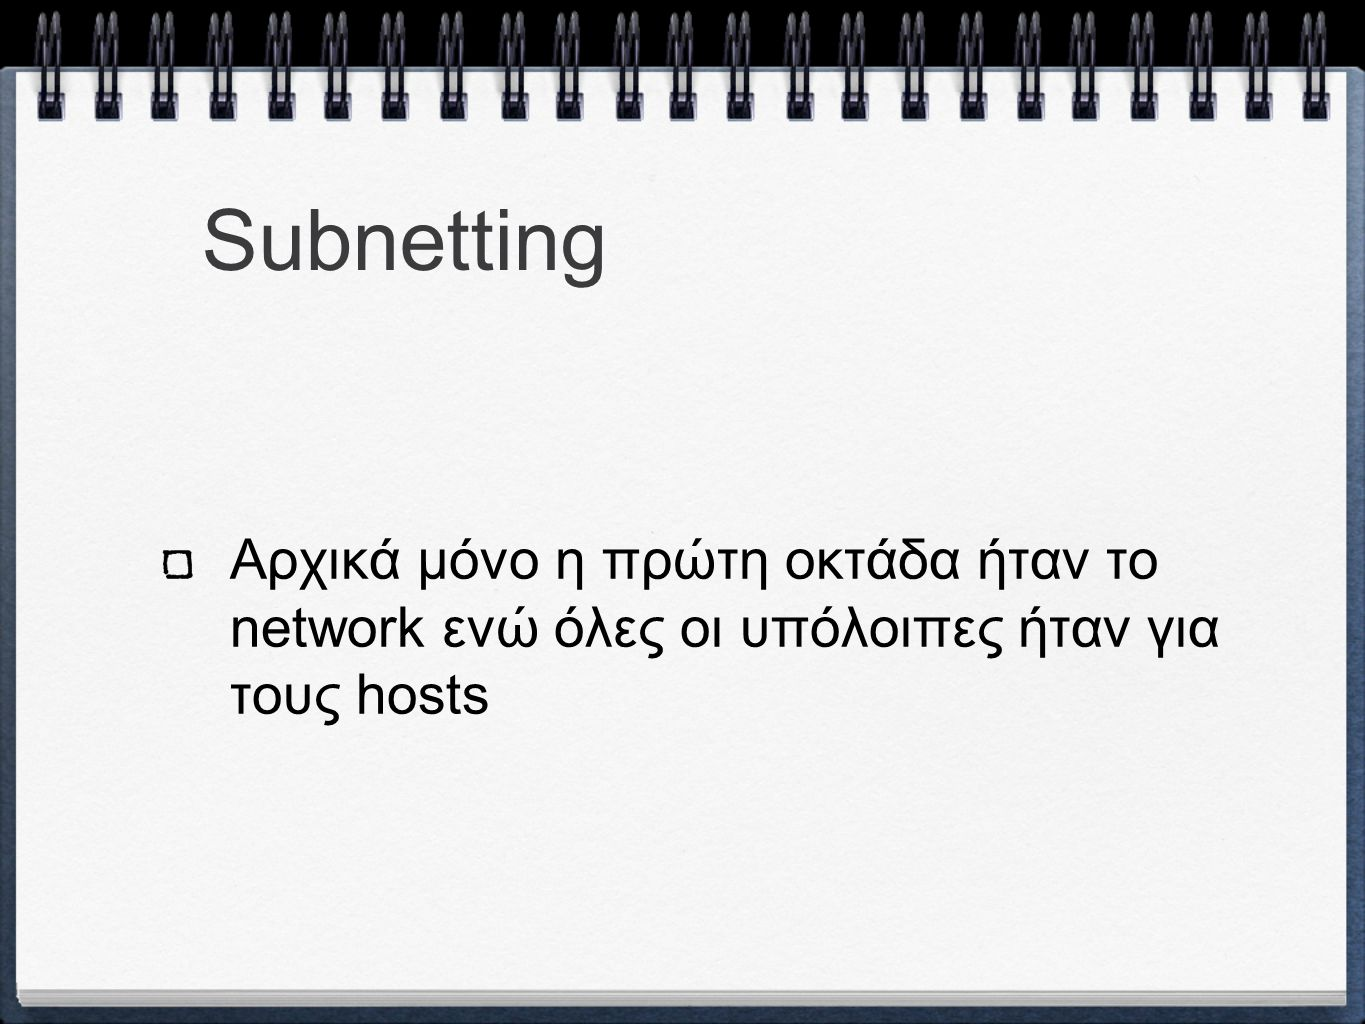 Subnetting Classful network architecture 3 κλάσεις A, B, C